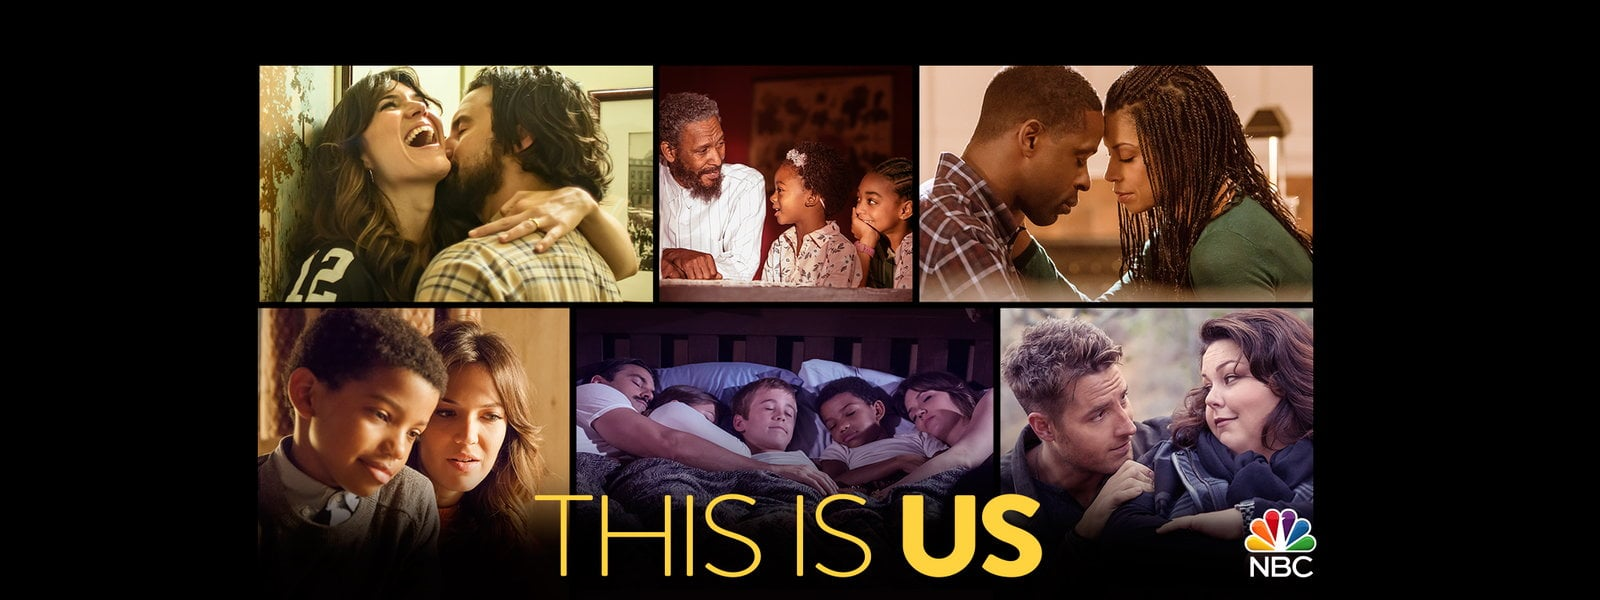 'This Is Us' is NOT Moving to Thursday Nights on NBC!